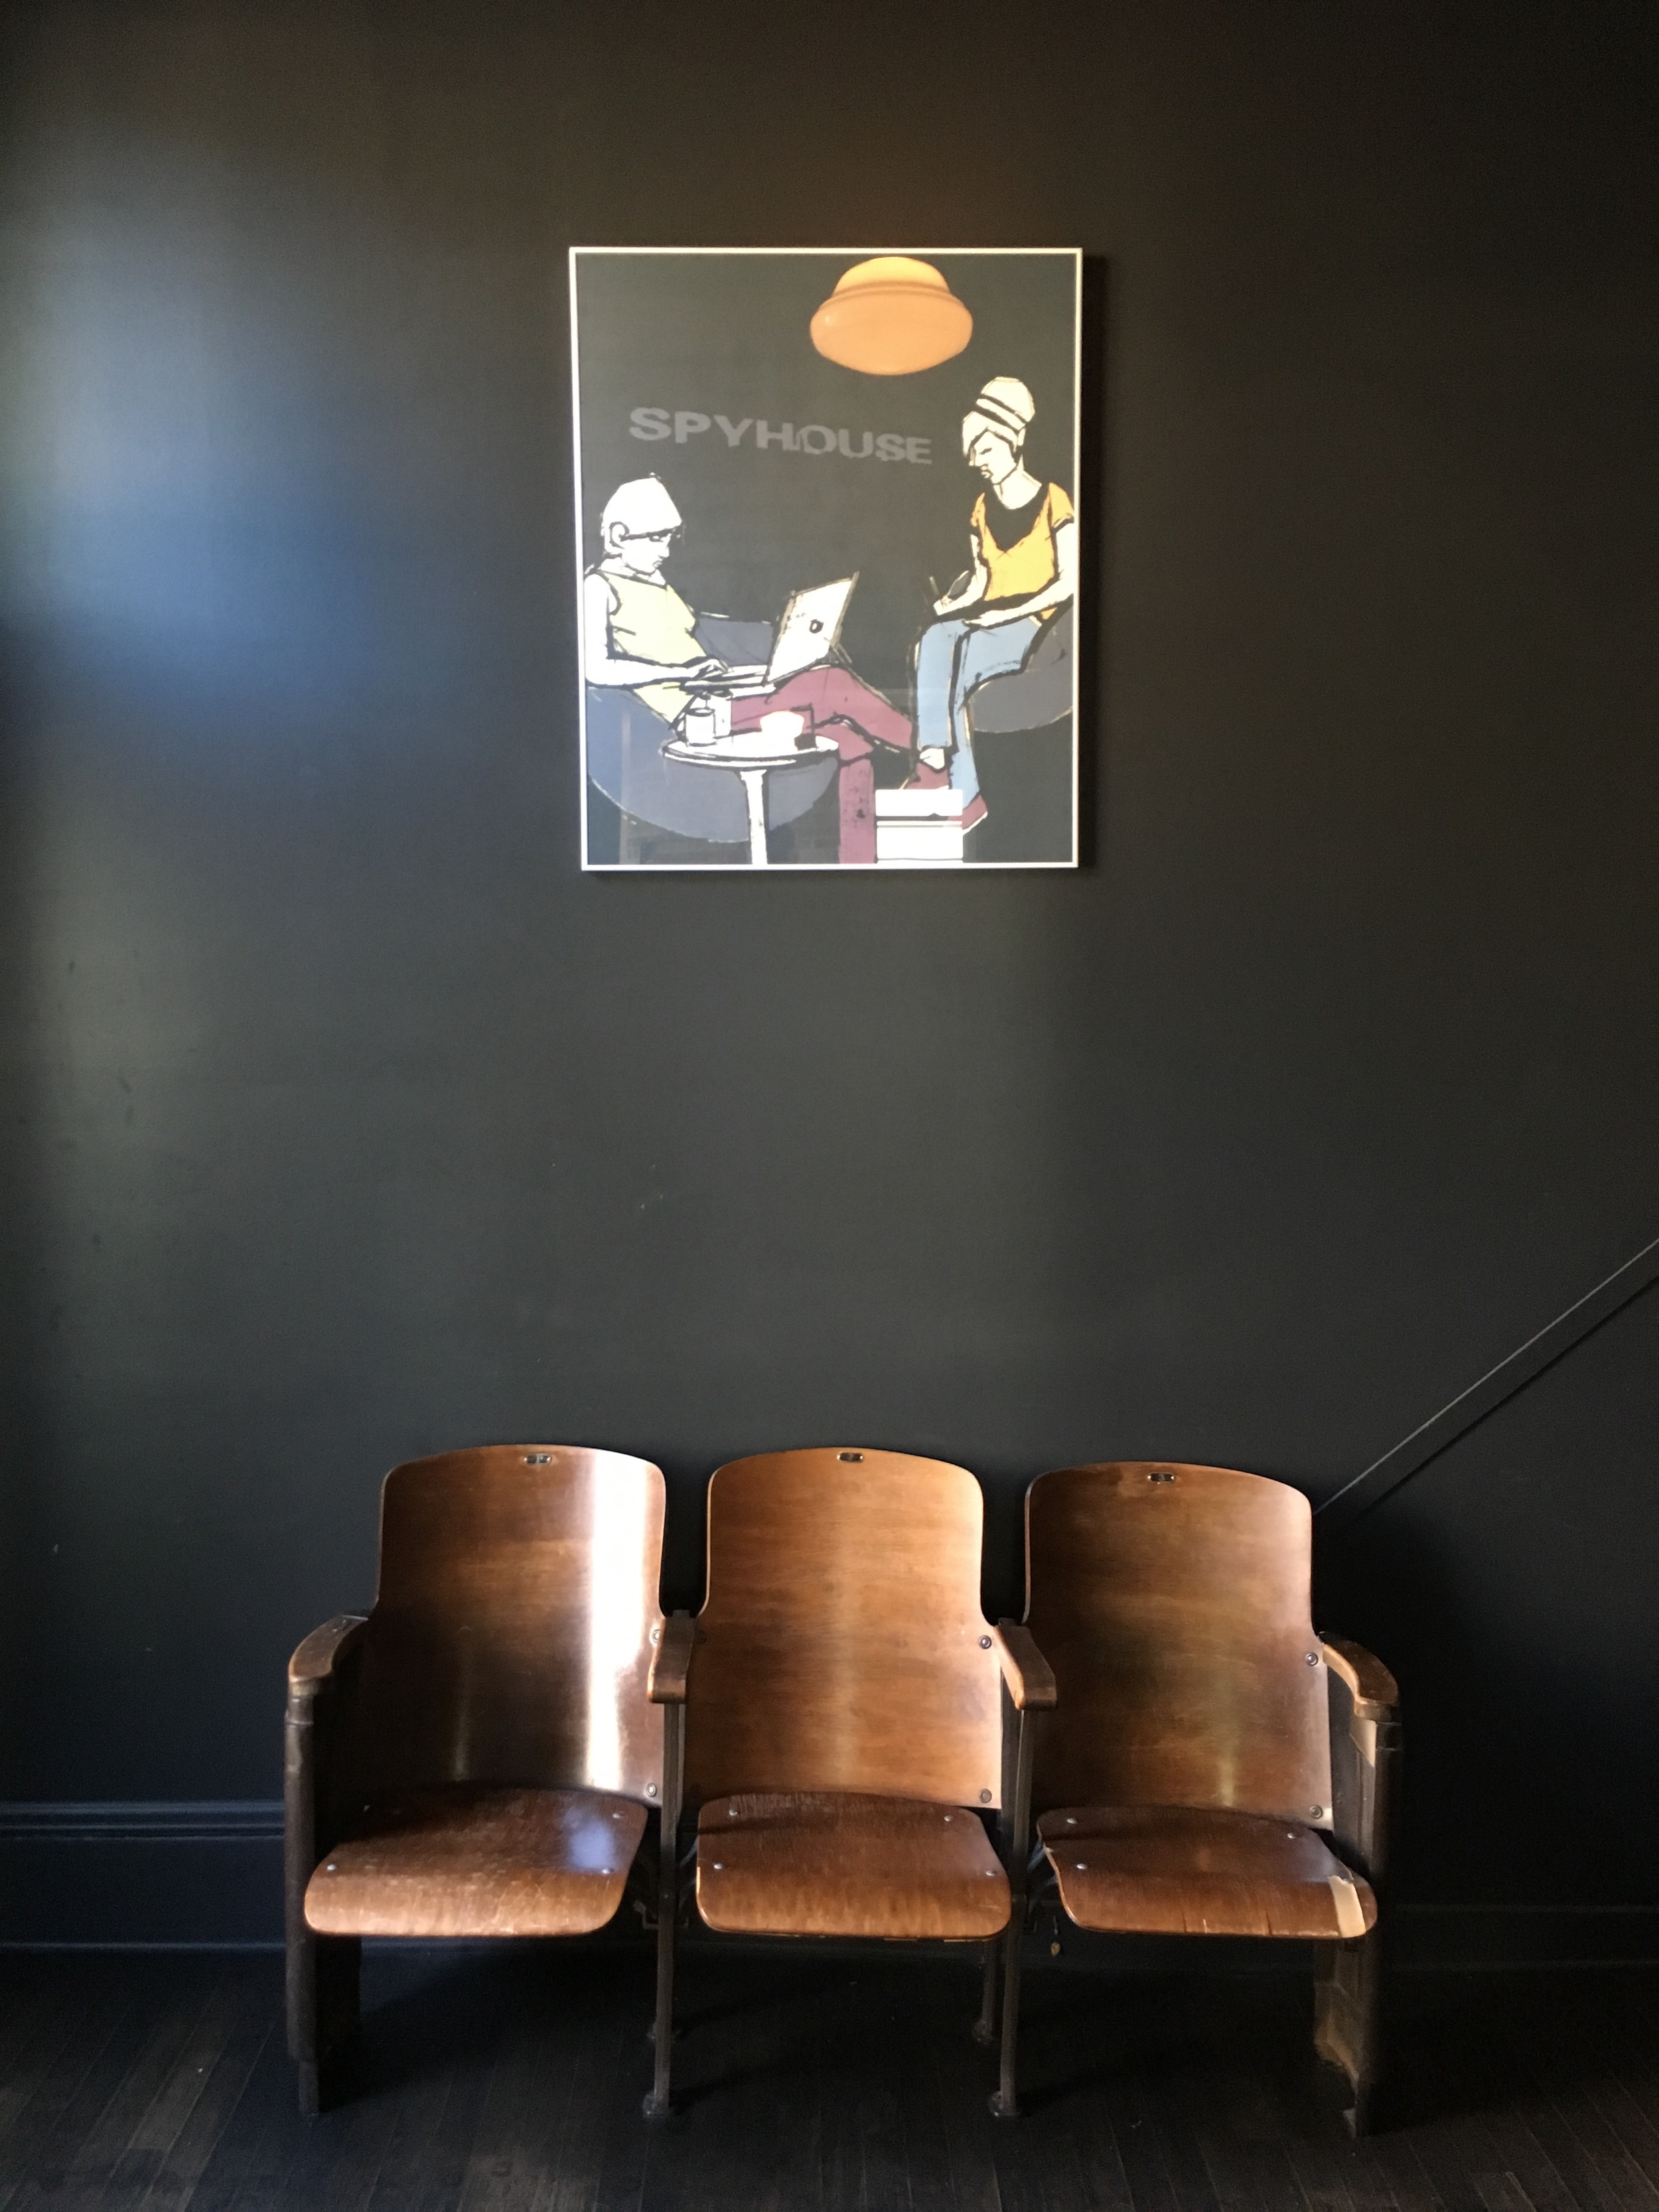 A piece done by an MCAD student for a Spyhouse assignment hangs in the Spyhouse Coffee Uptown location at 24th & Hennepin. Submitted photo.